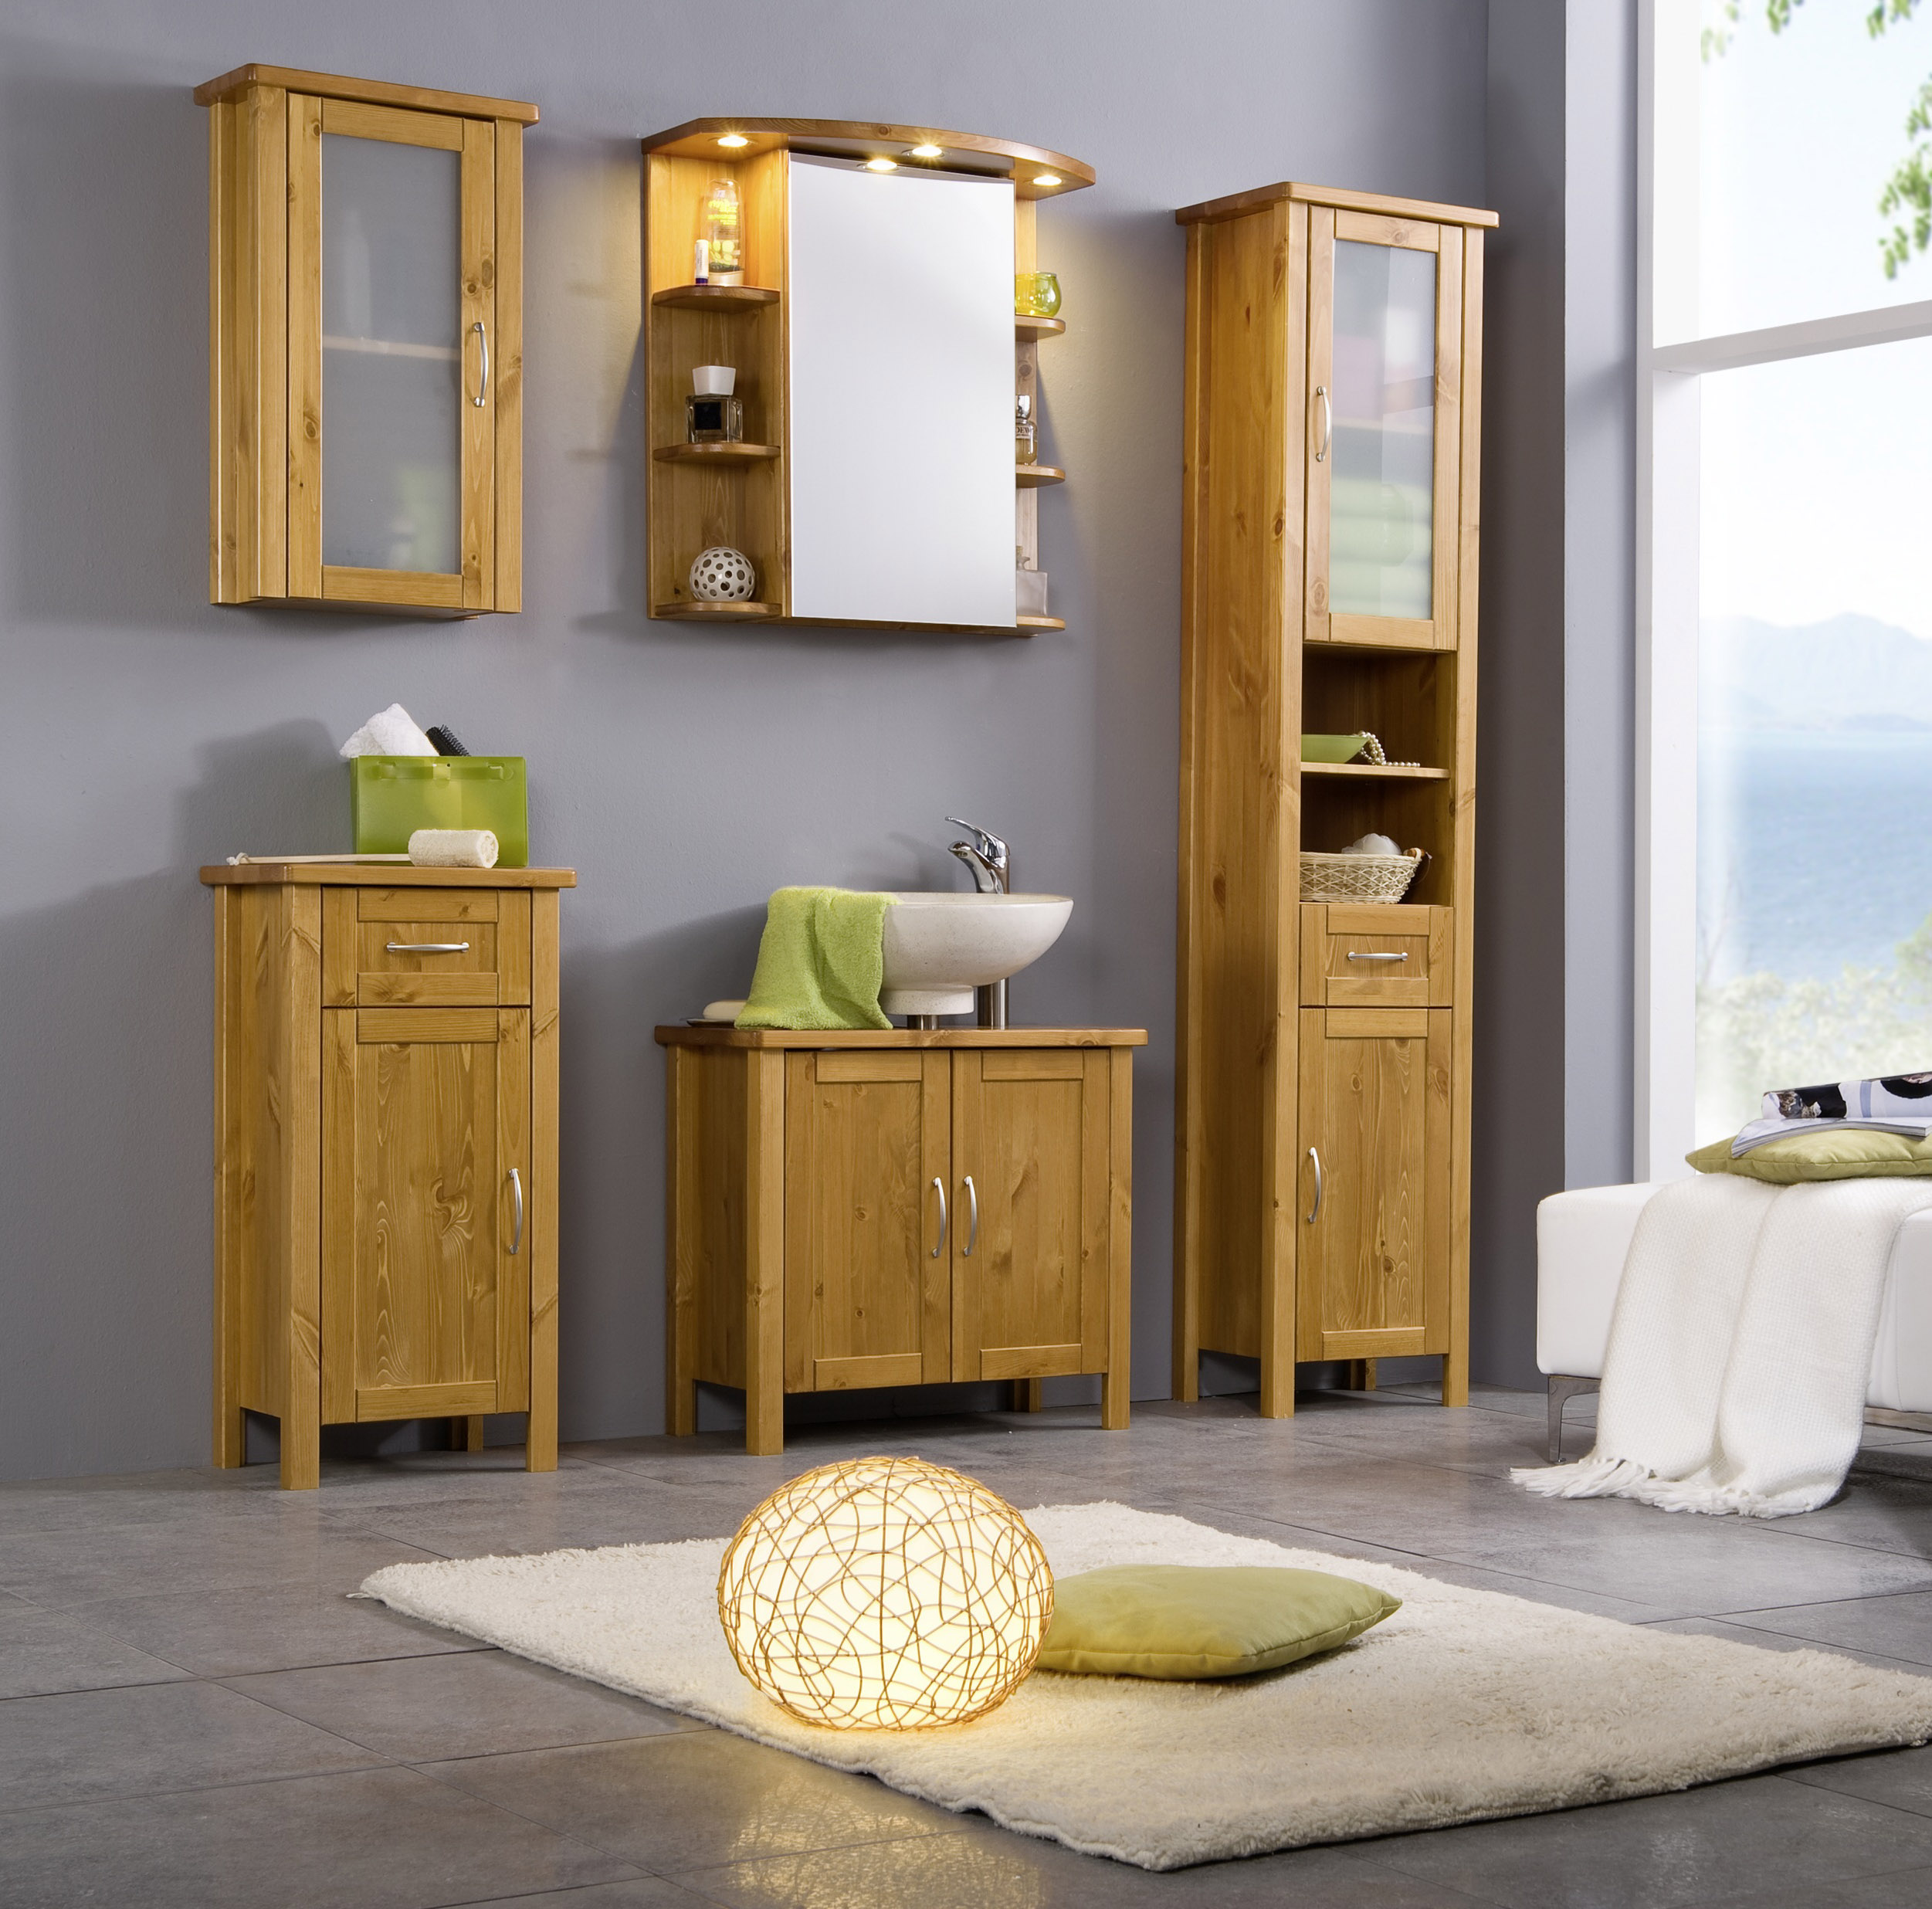 sam bad set honig massiv kiefer lackiert 5tlg venedig demn chst. Black Bedroom Furniture Sets. Home Design Ideas